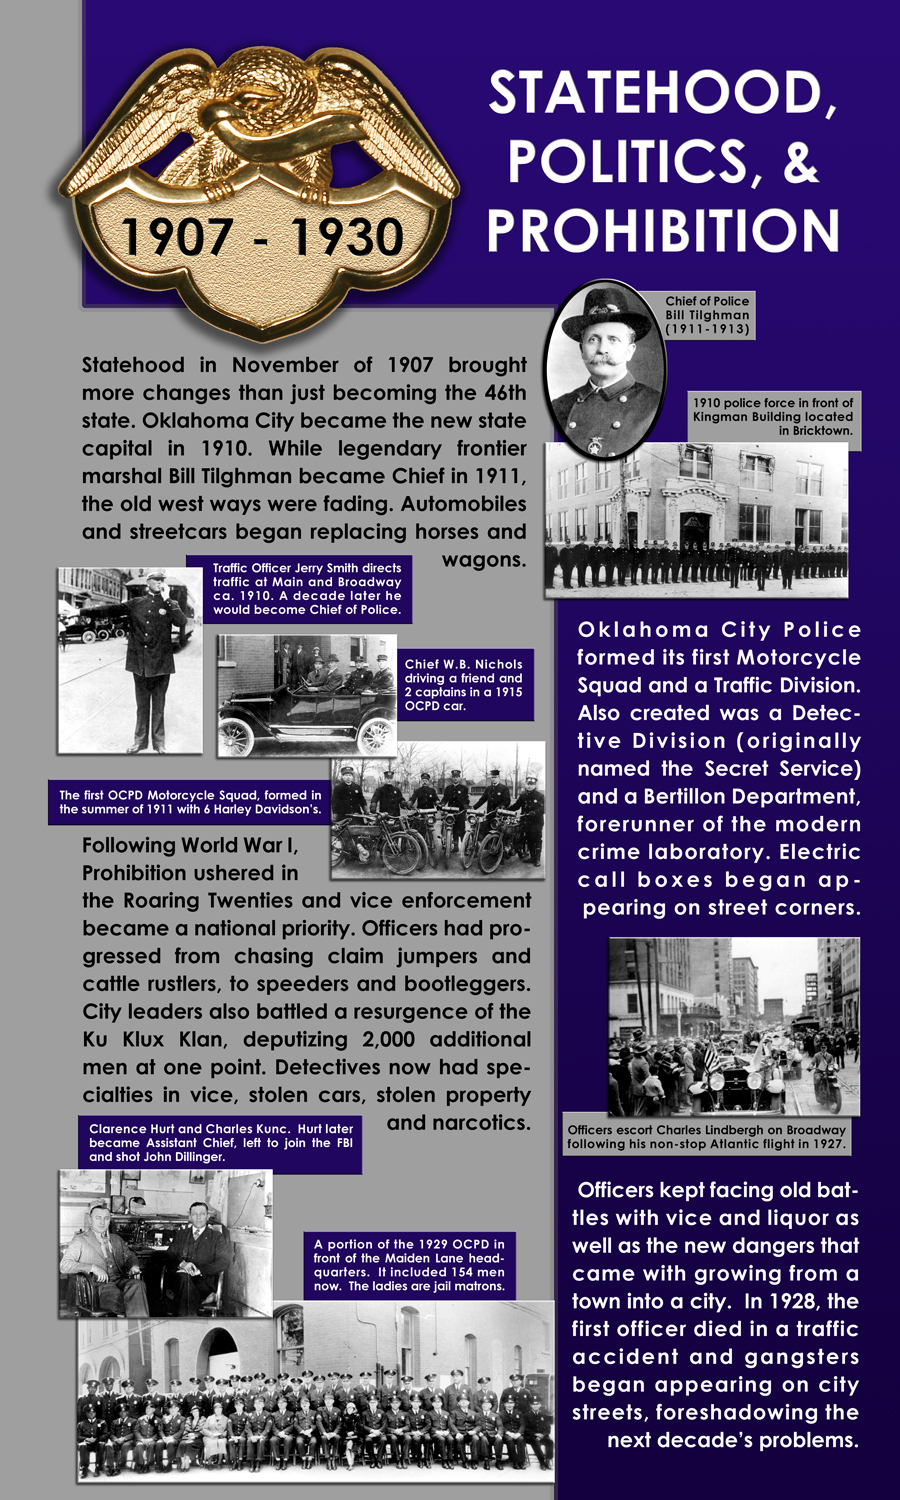 Information about the Statehood, Politics & Prohibition era